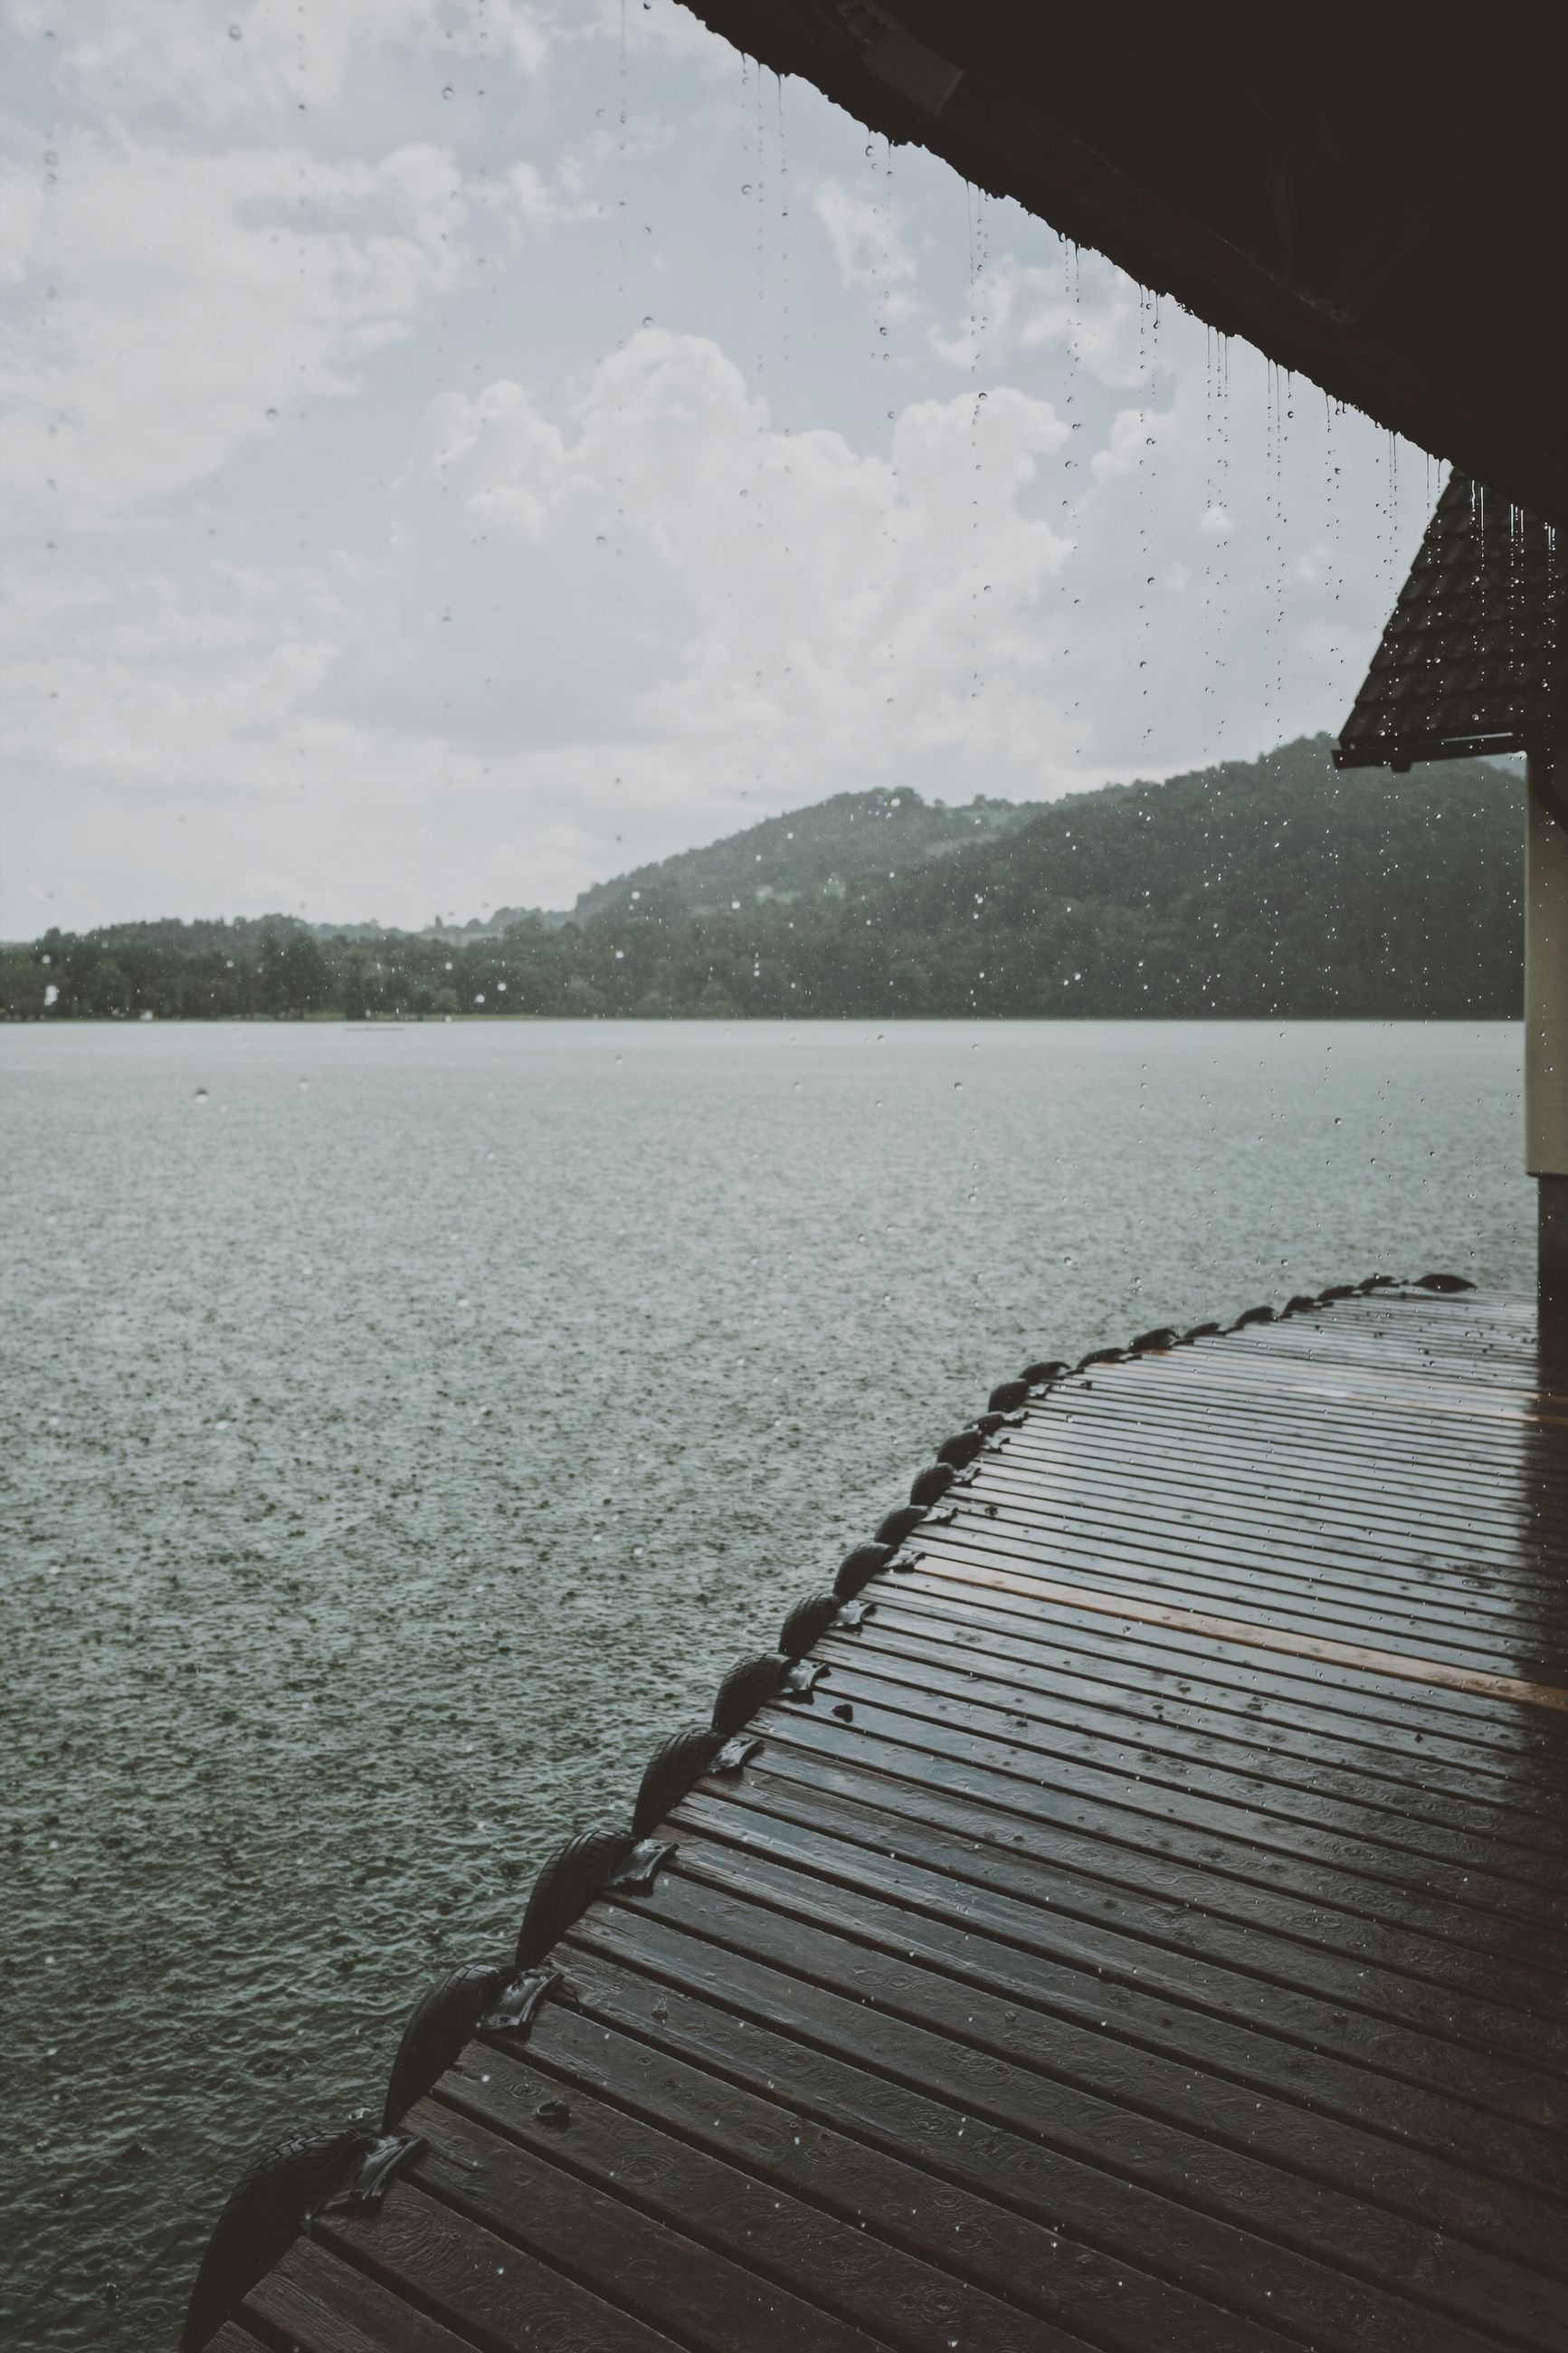 water, lake, sky, day, nature, beauty in nature, no people, tranquility, pier, wood - material, scenics - nature, tranquil scene, outdoors, rippled, cloud - sky, railing, architecture